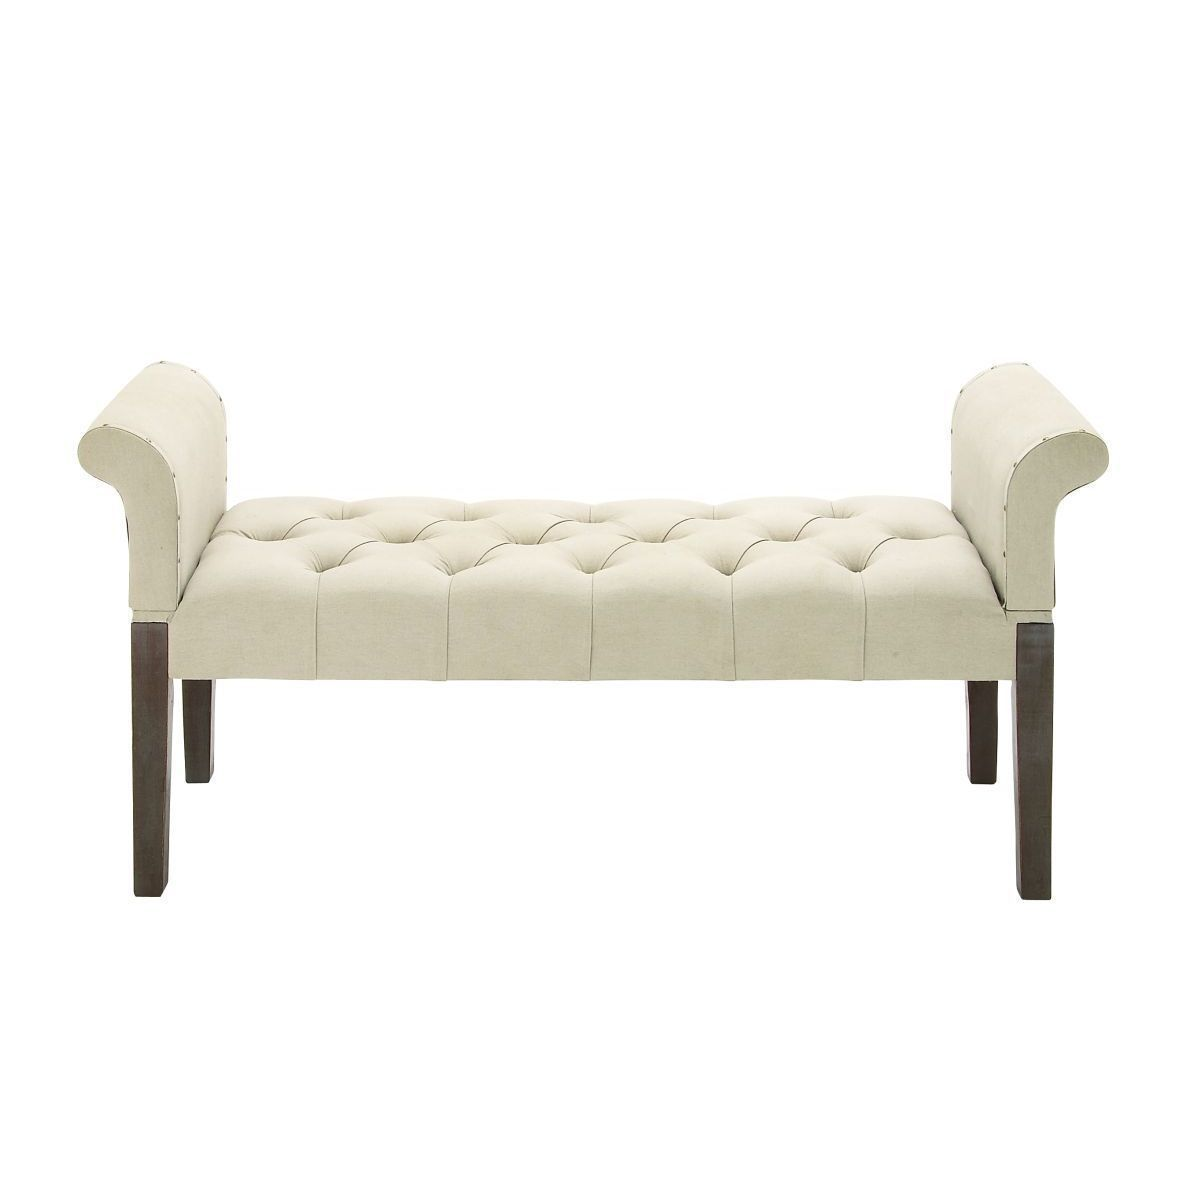 Traditional Wooden Cleopatra Beige Fabric Bench By Studio 350 Wd 53 W 26 H